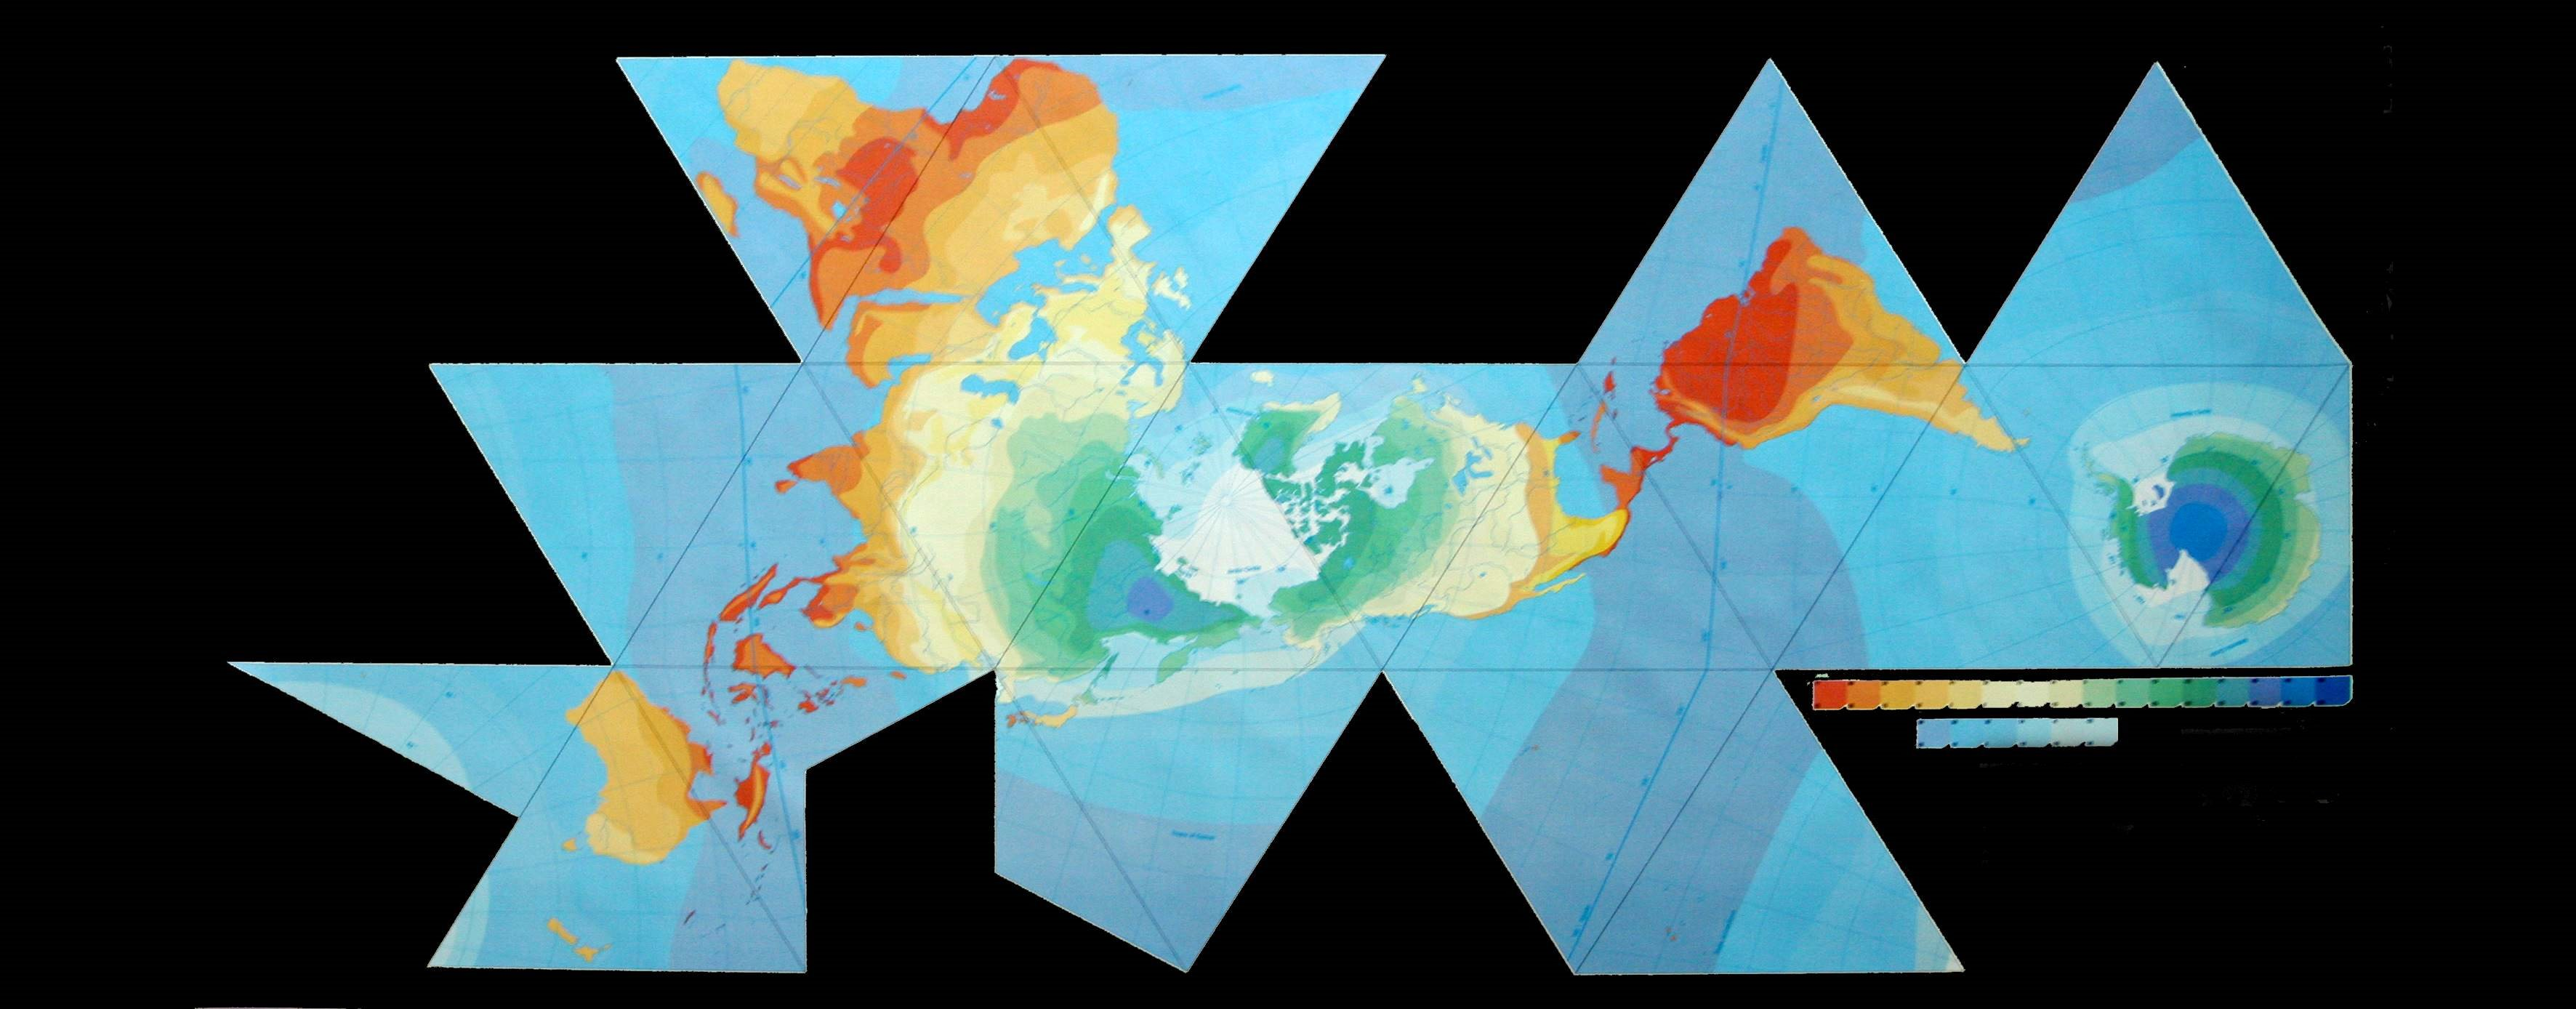 Dymaxion Map on